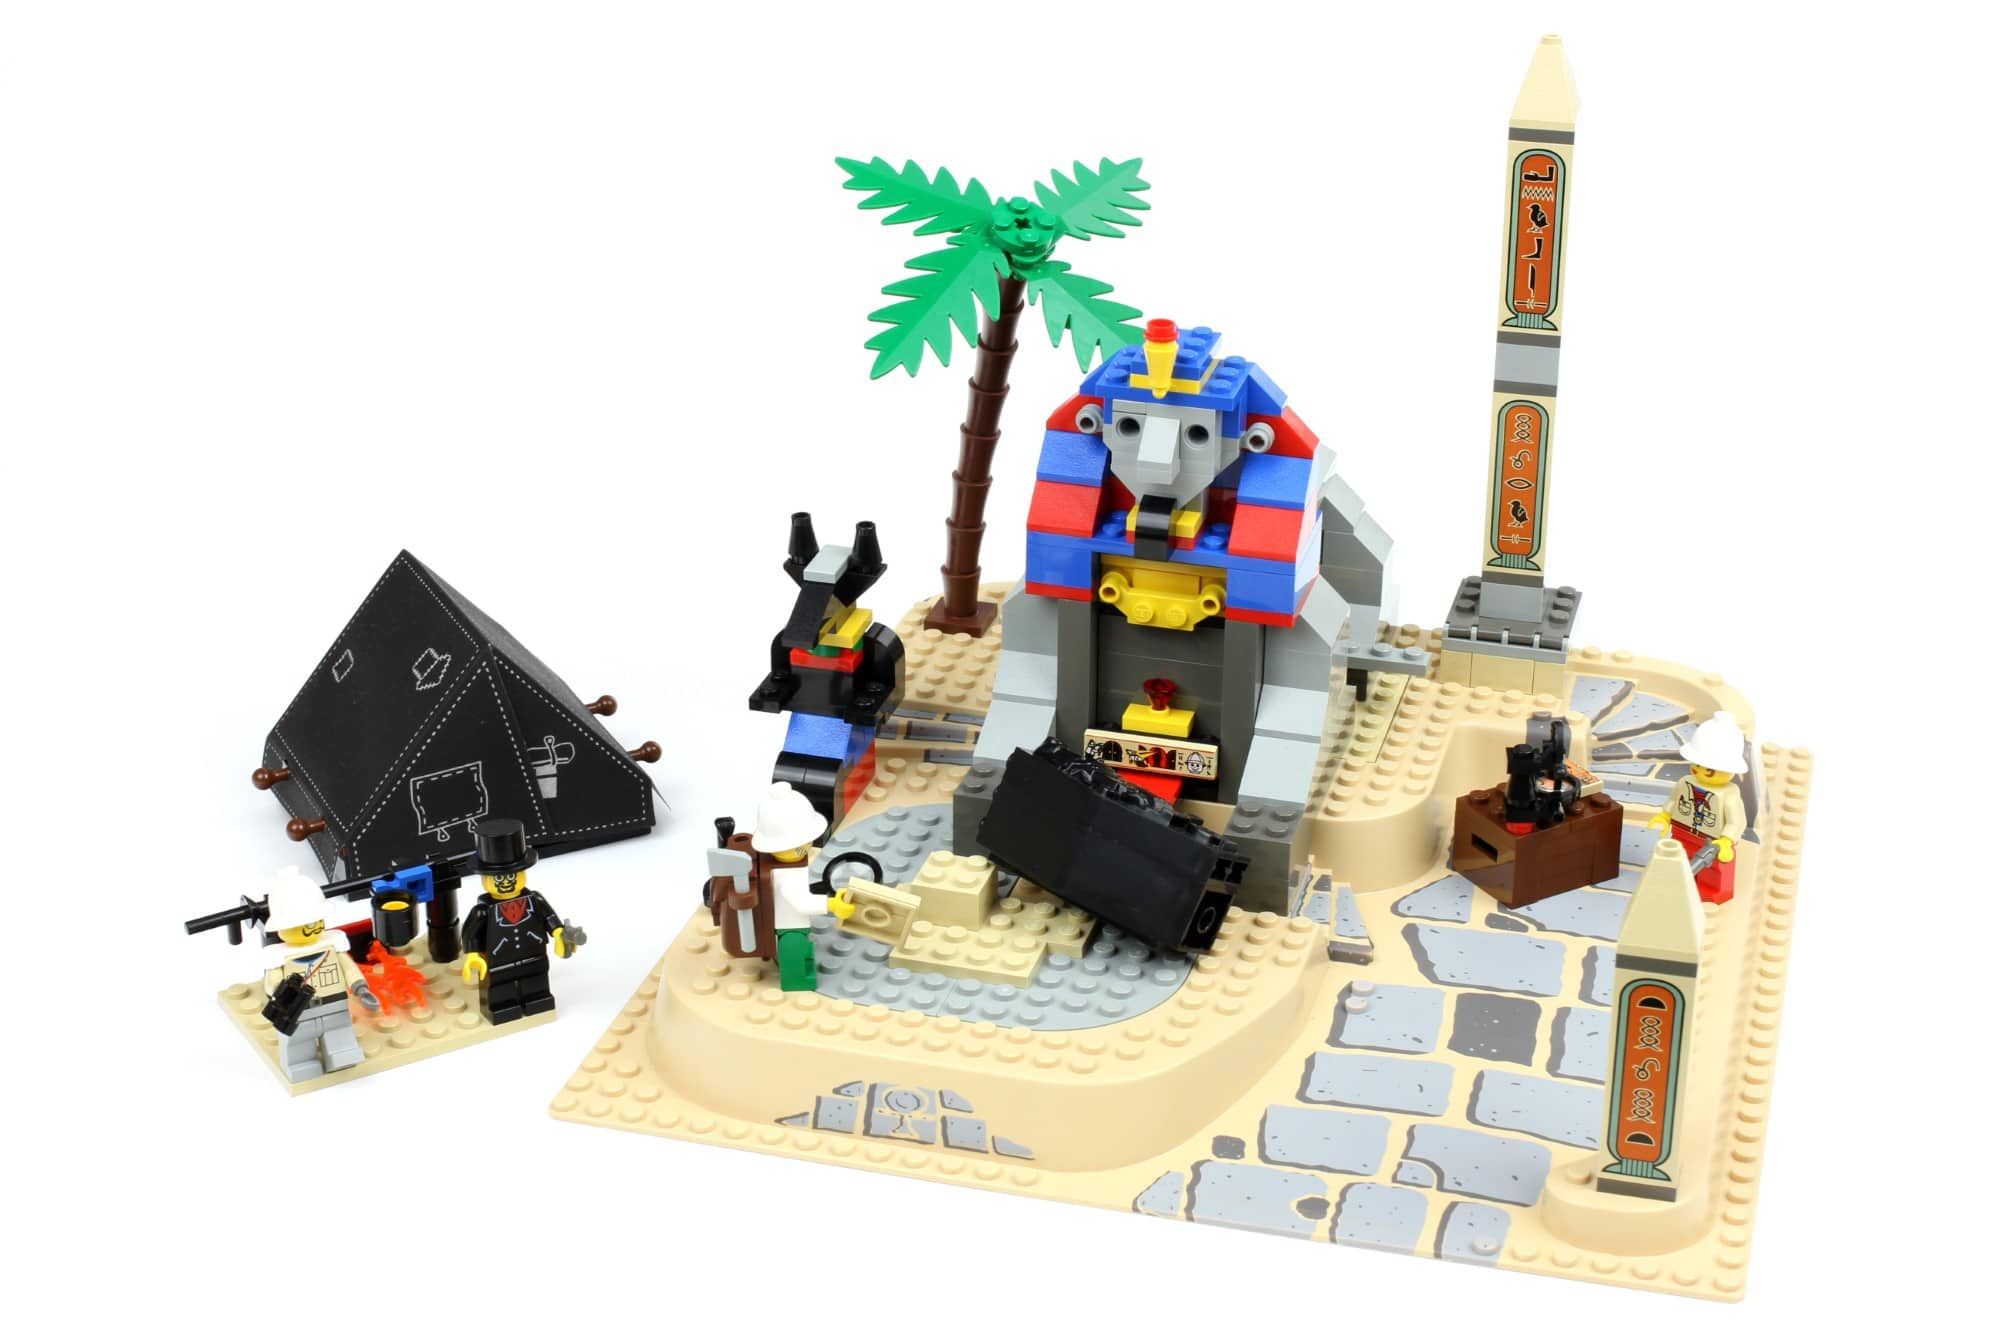 LEGO Fairground Collection 10273 Haunted House Vergleich Ägypten Sphinx